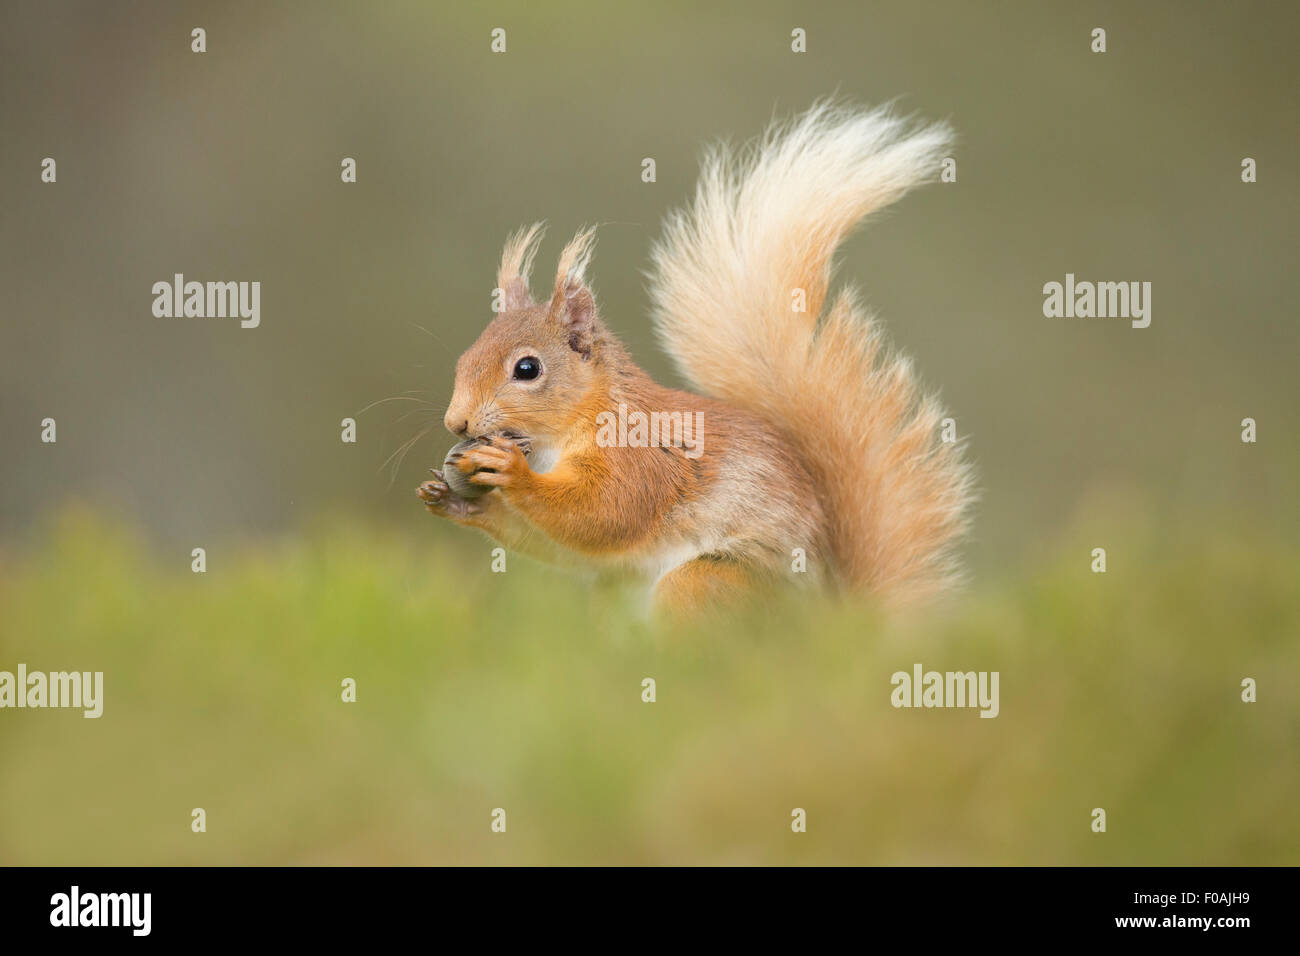 Scottish Red Squirrel tucking into a Hazelnut. Stock Photo